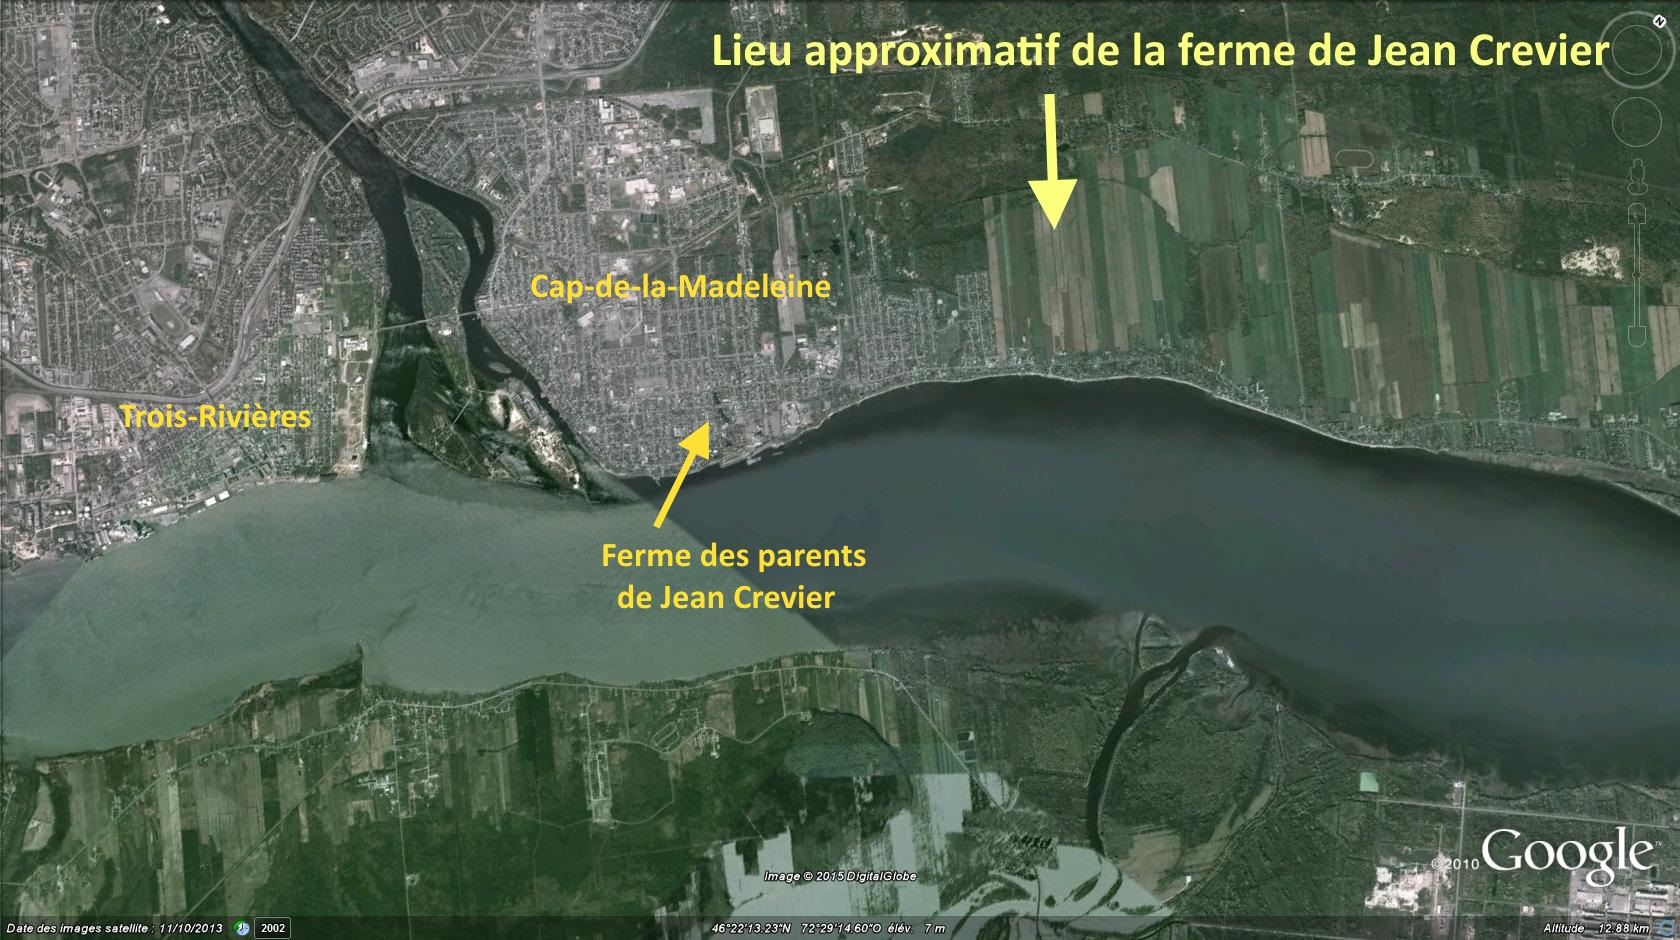 cap de la madeleine guys Cap-de-la-madeleine: cap-de-la-madeleine, former city, southern quebec province, southeastern canada it is located on the north shore of the st lawrence river.